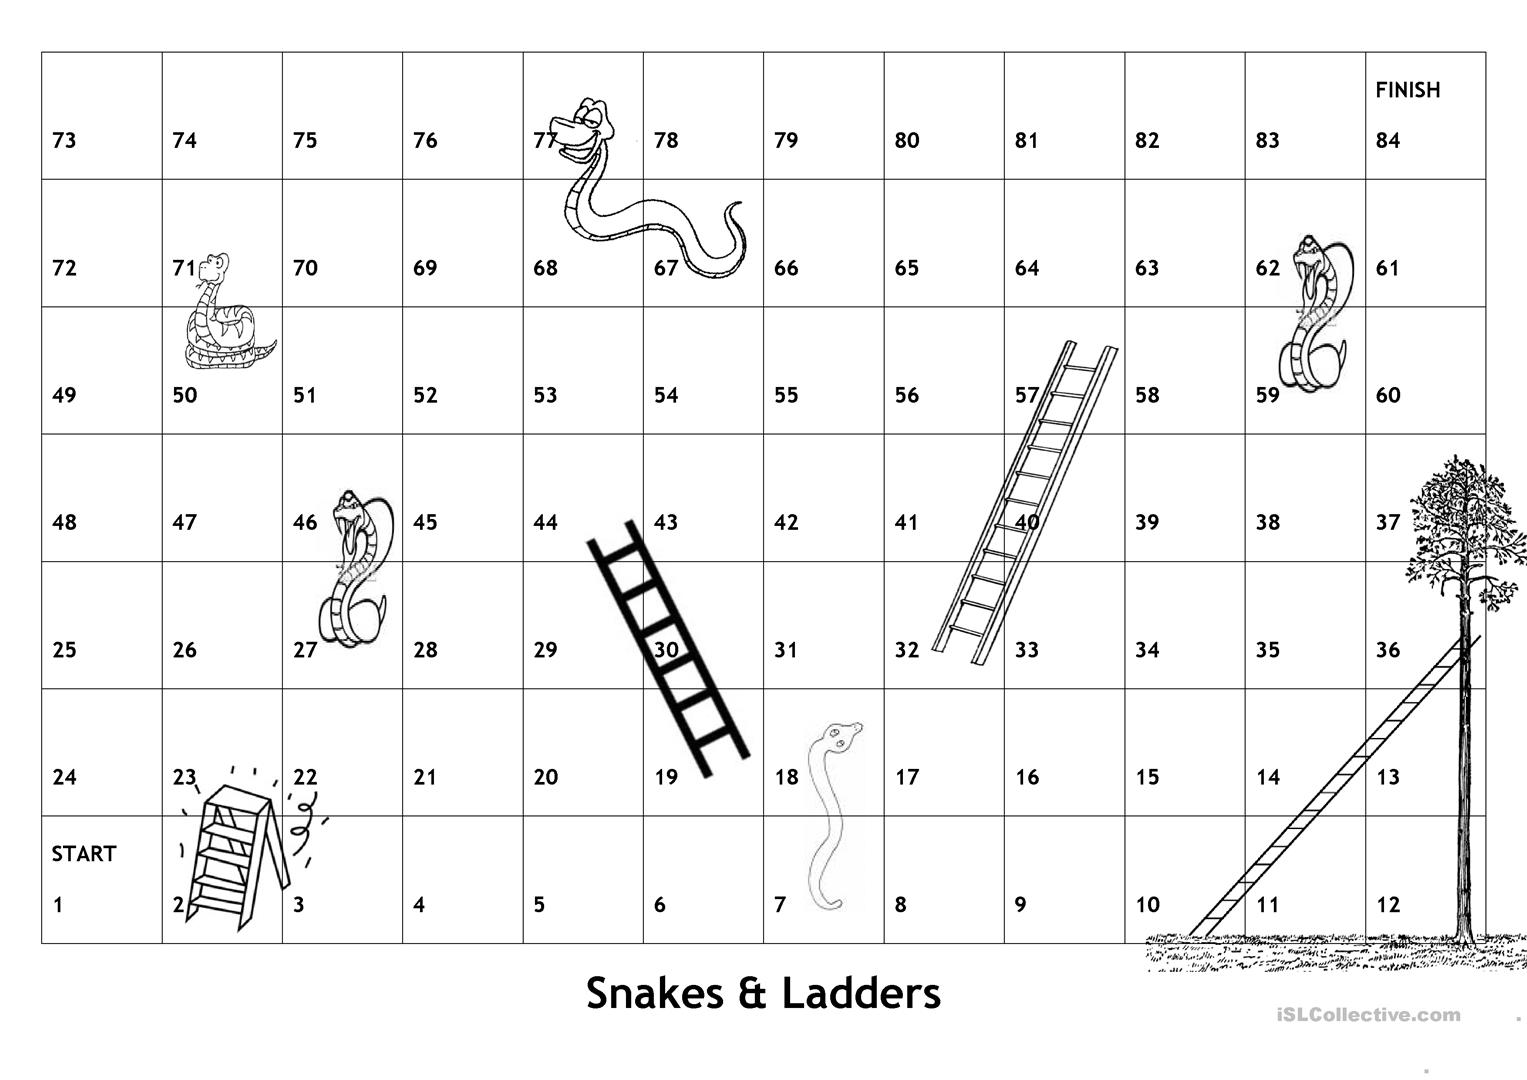 29 free esl snakes and ladders worksheets board game snakes ladders with english game questions and ins solutioingenieria Gallery